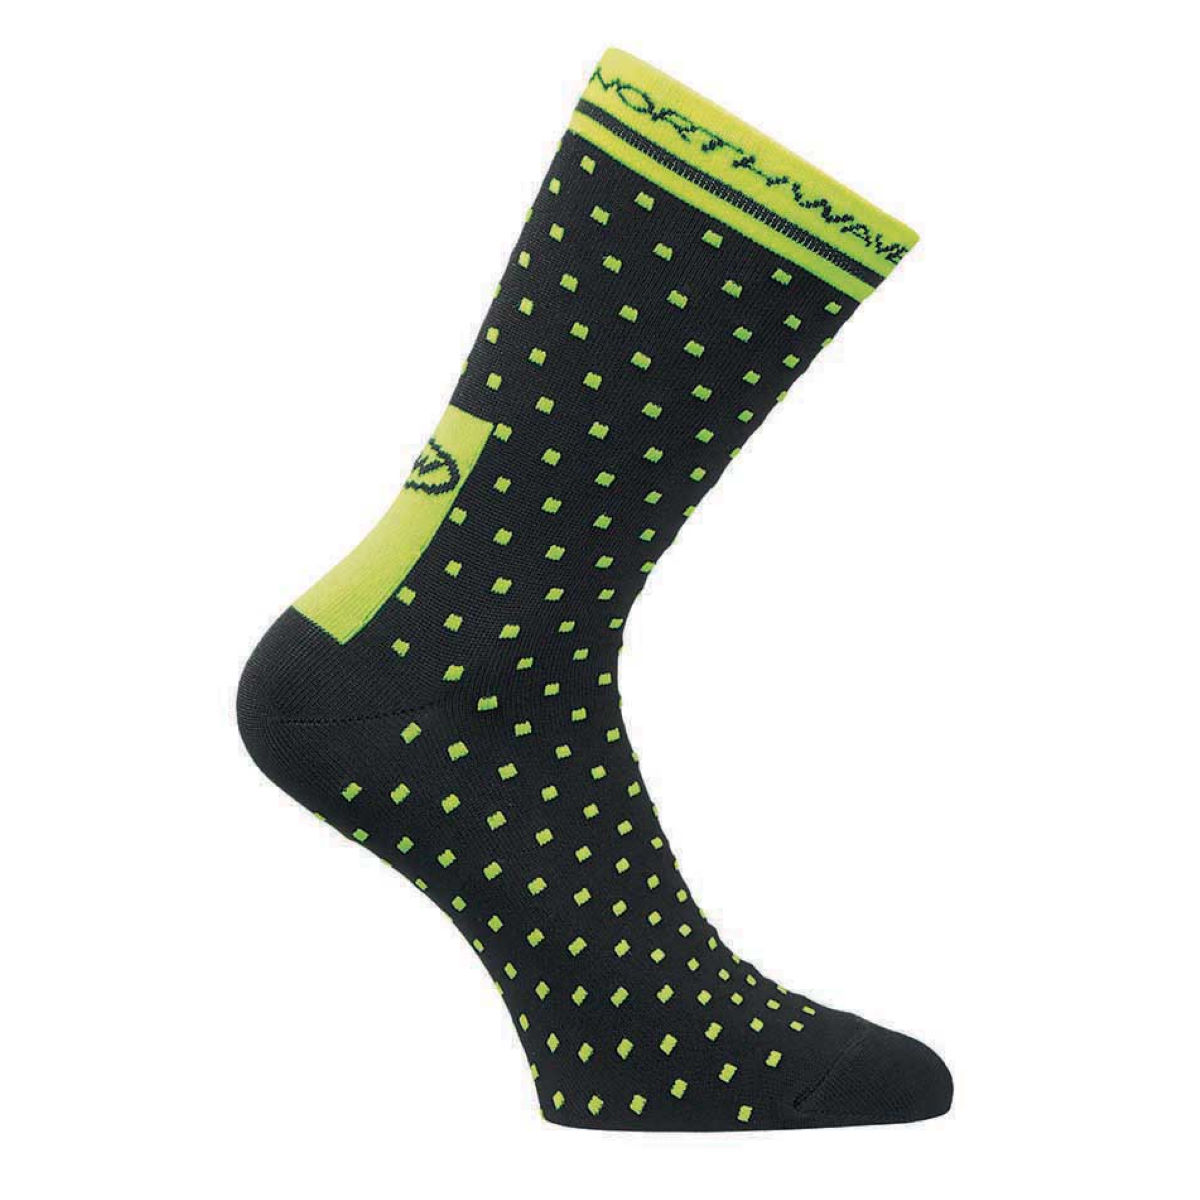 Chaussettes Northwave Switch Line - S Black/Yellow Fluo Chaussettes